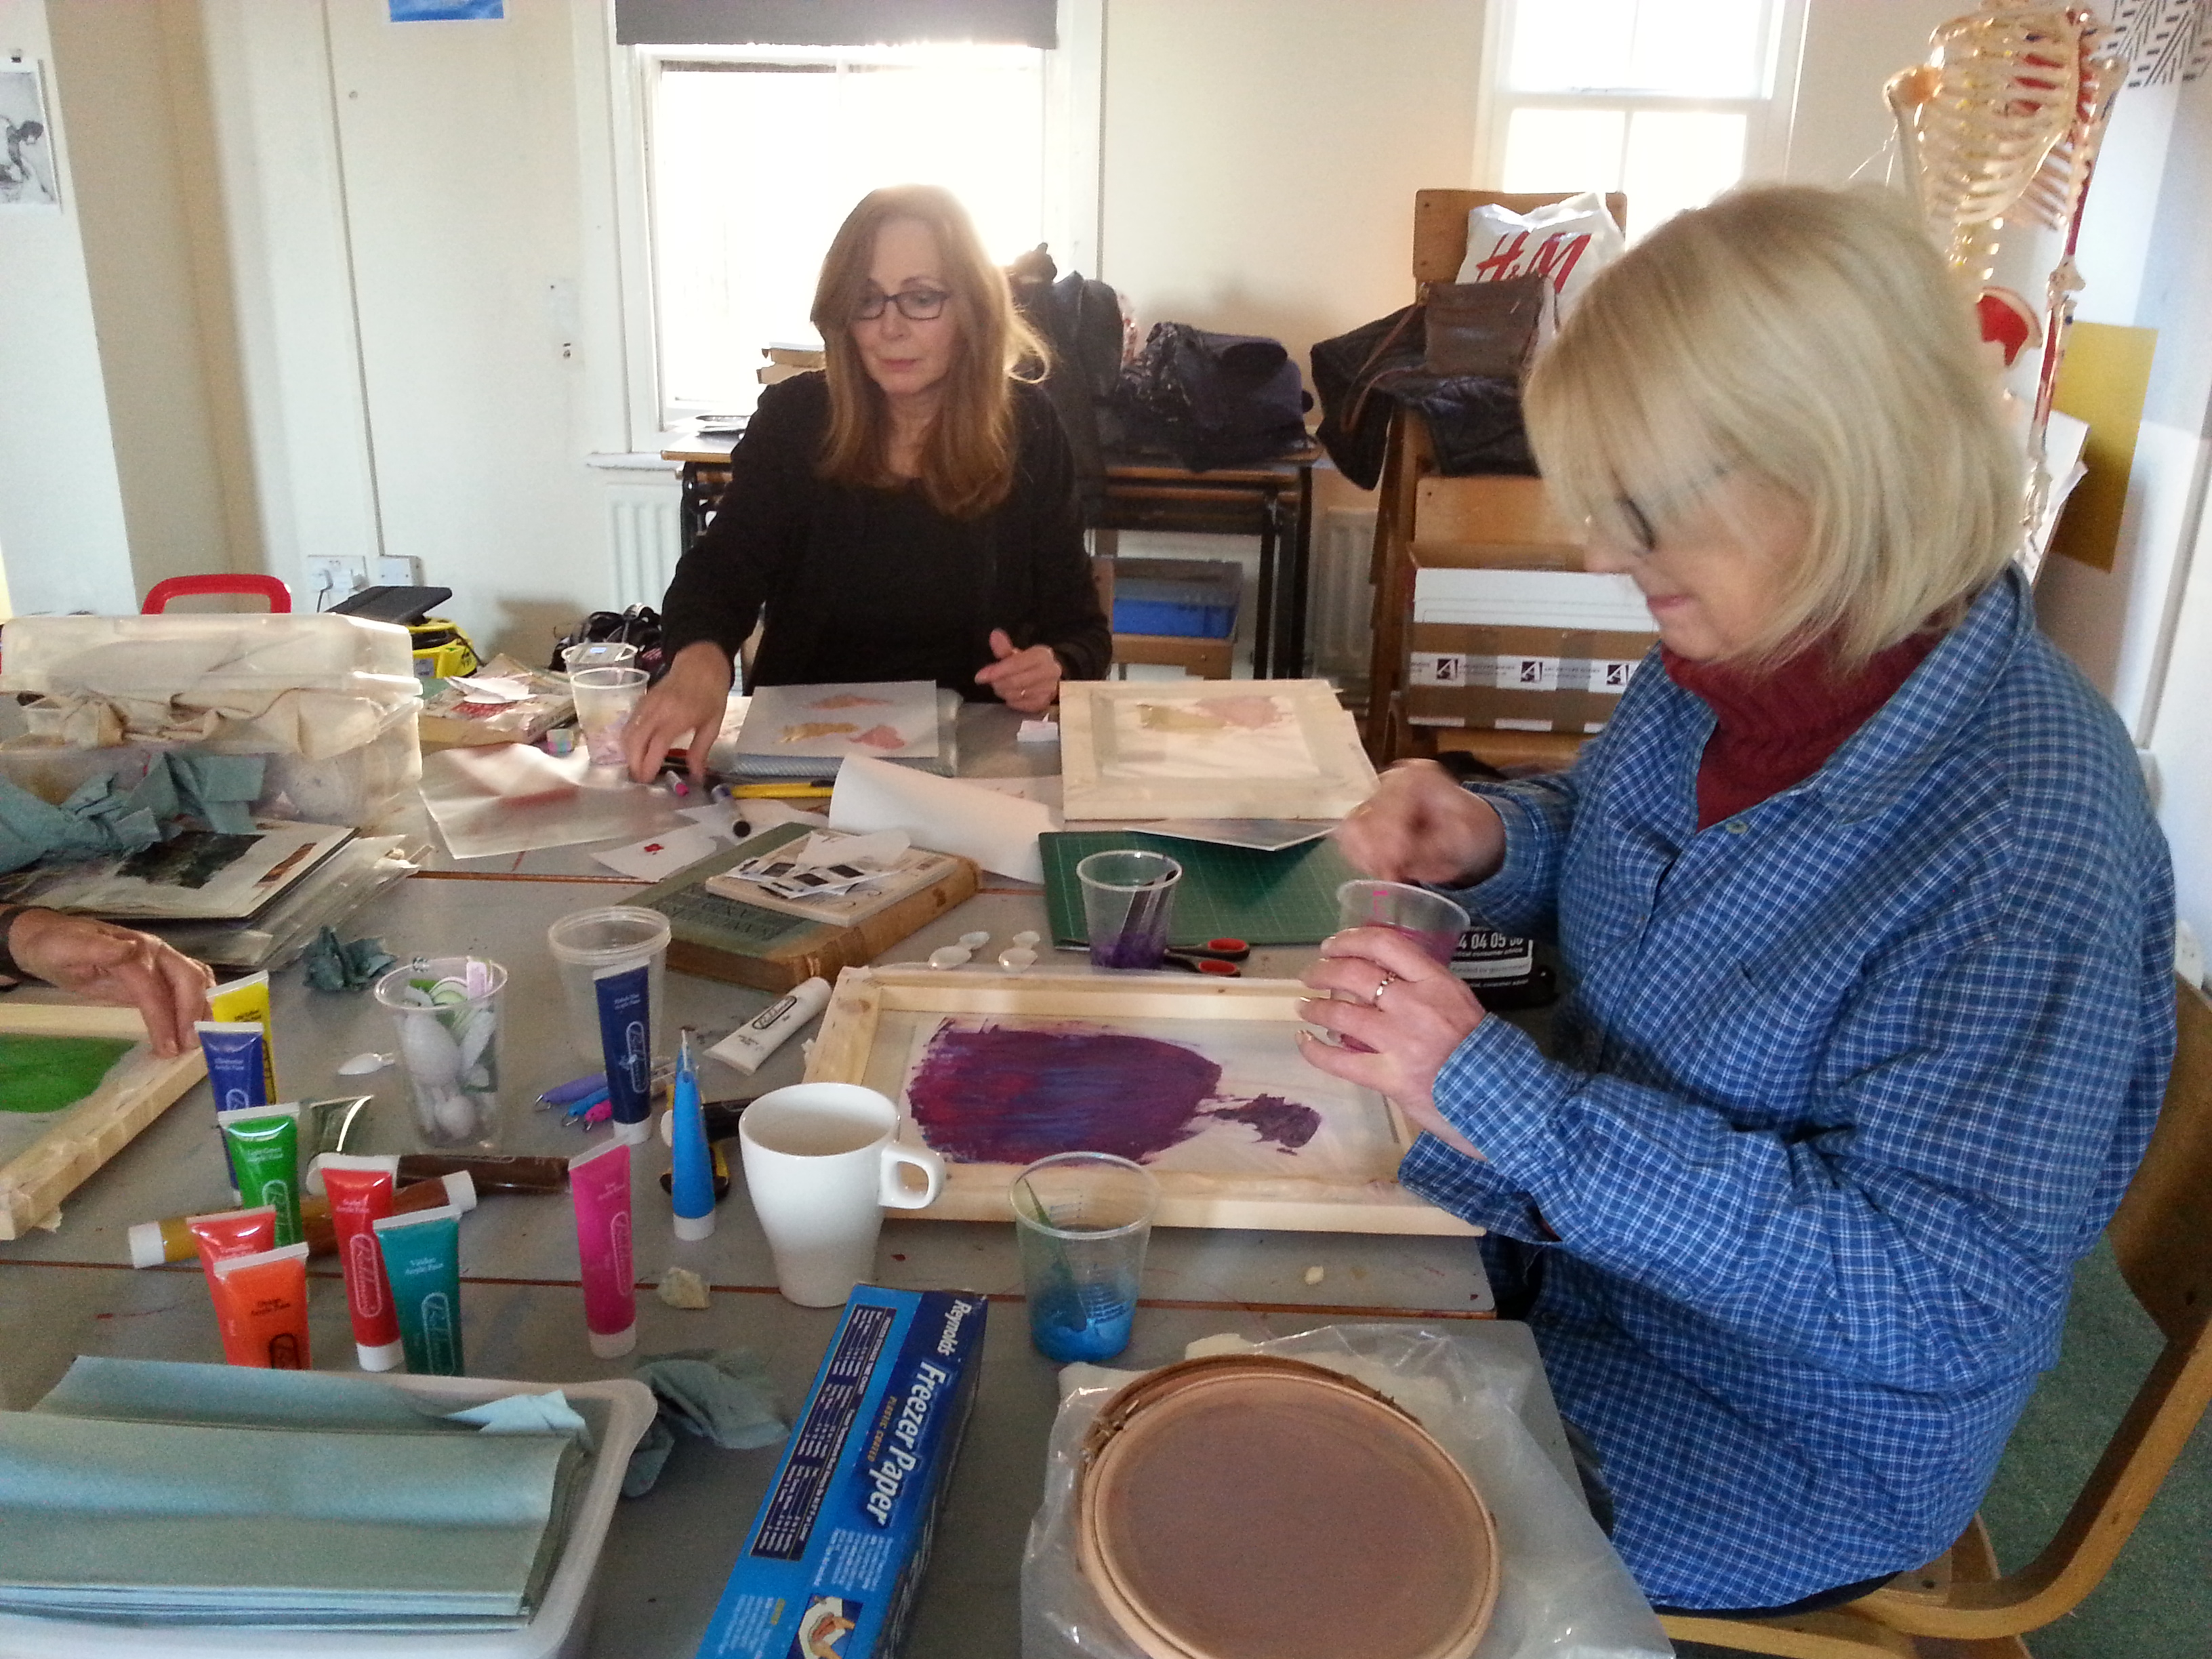 Open Studios Altrincham Friday Textiles Group with Debbie Tomkies of DT Craft & Design